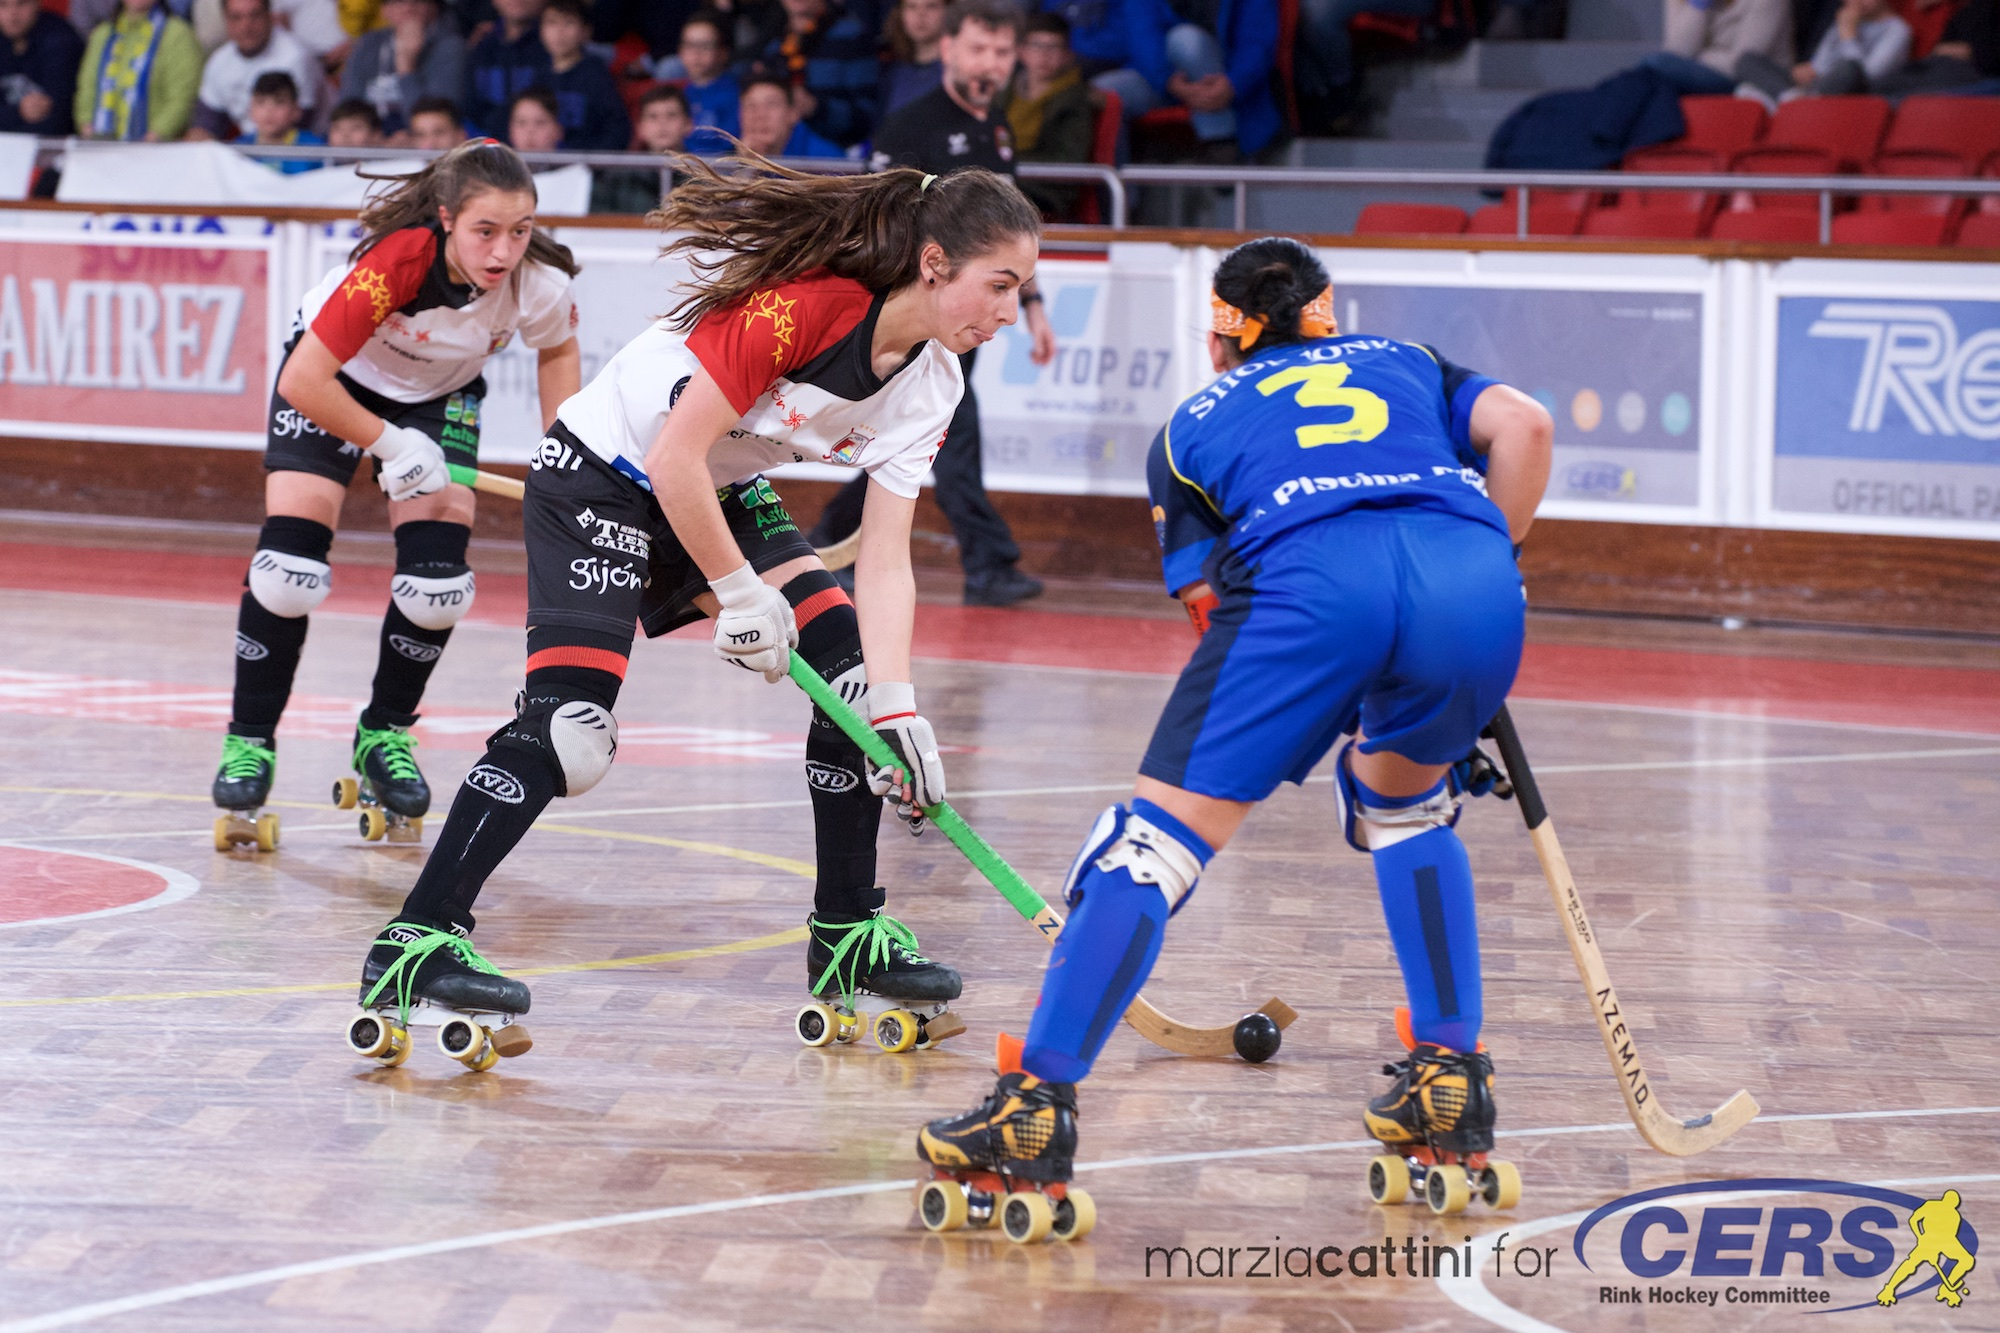 PHOTOS - 17/03/2018 - FEMALE LEAGUE CUP - Match #145 - Semifinal #2 - Stuart HCM (PT) v Gijon HC (SP)